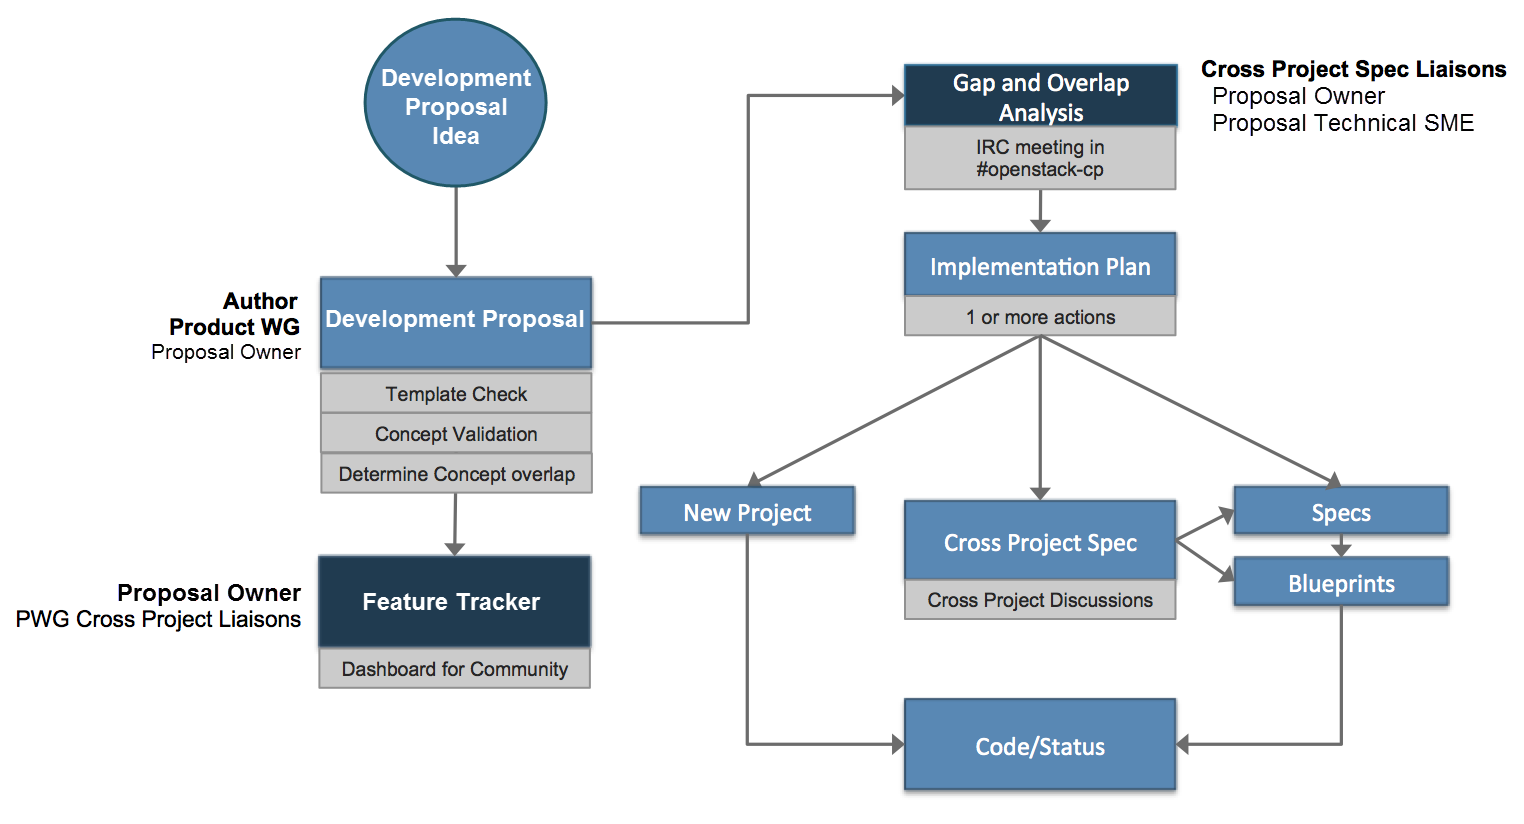 Development Proposal Workflow